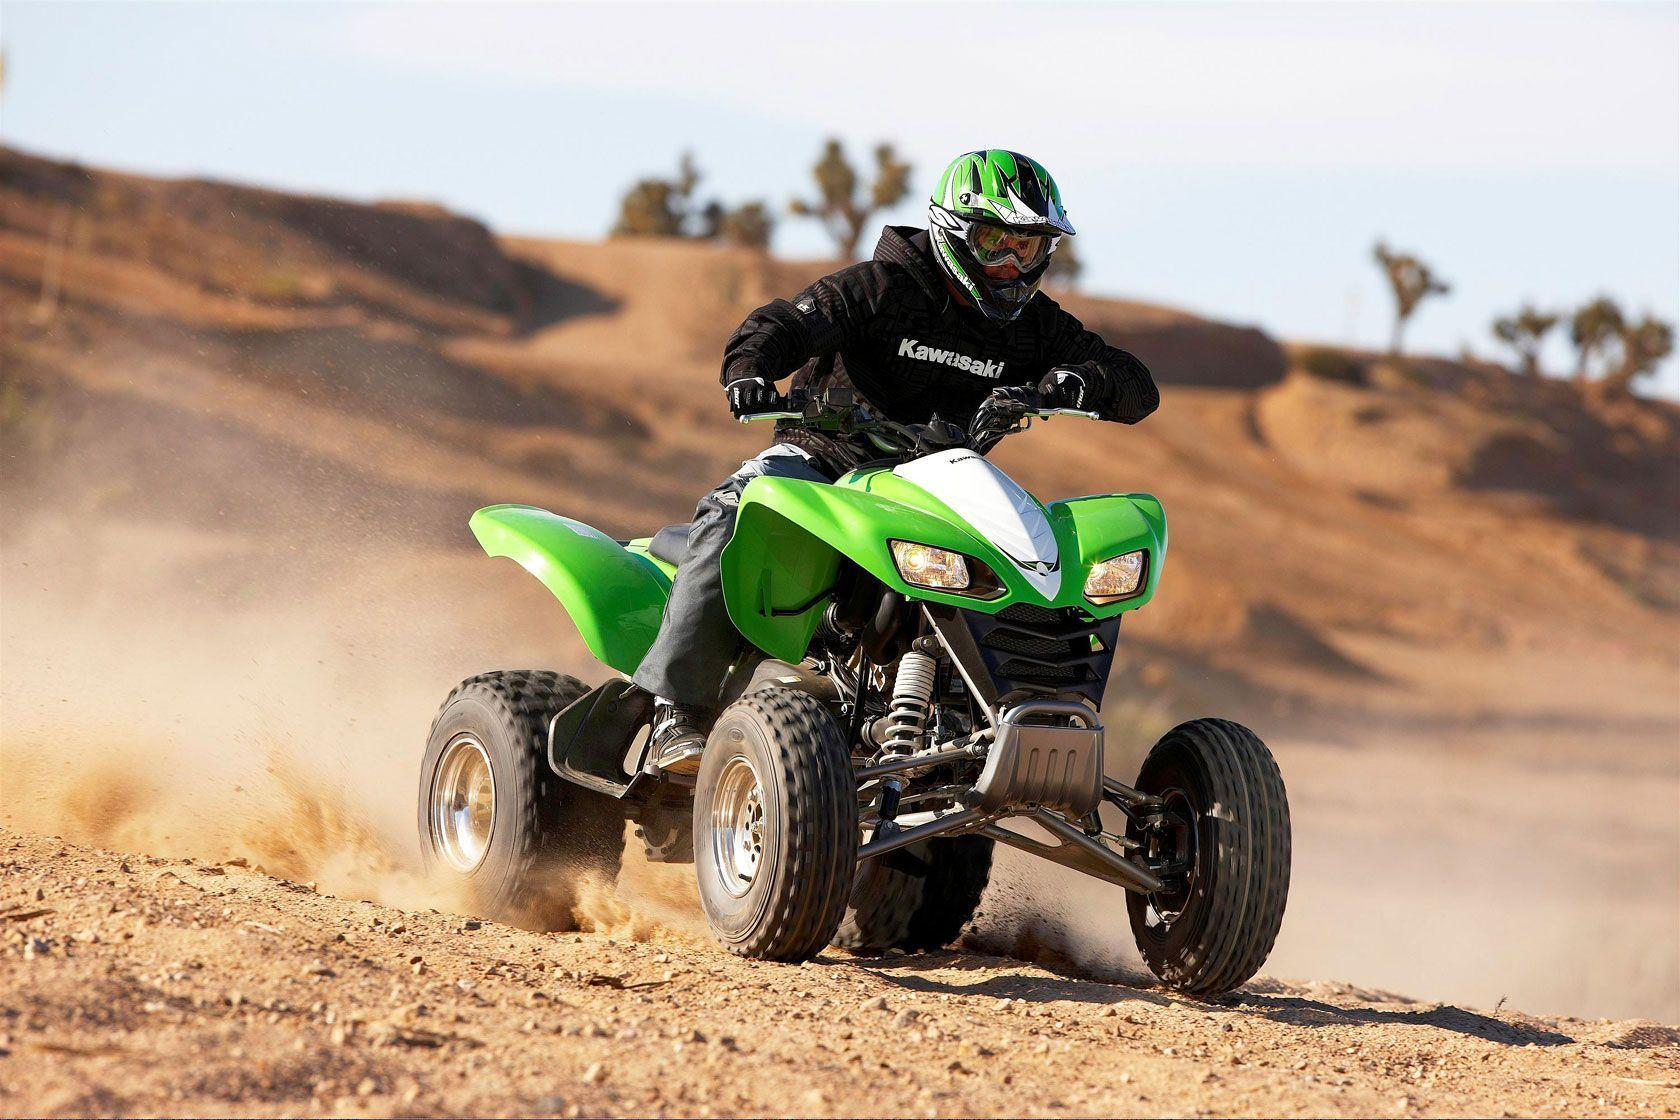 Kawasaki ATV - wallpaper.